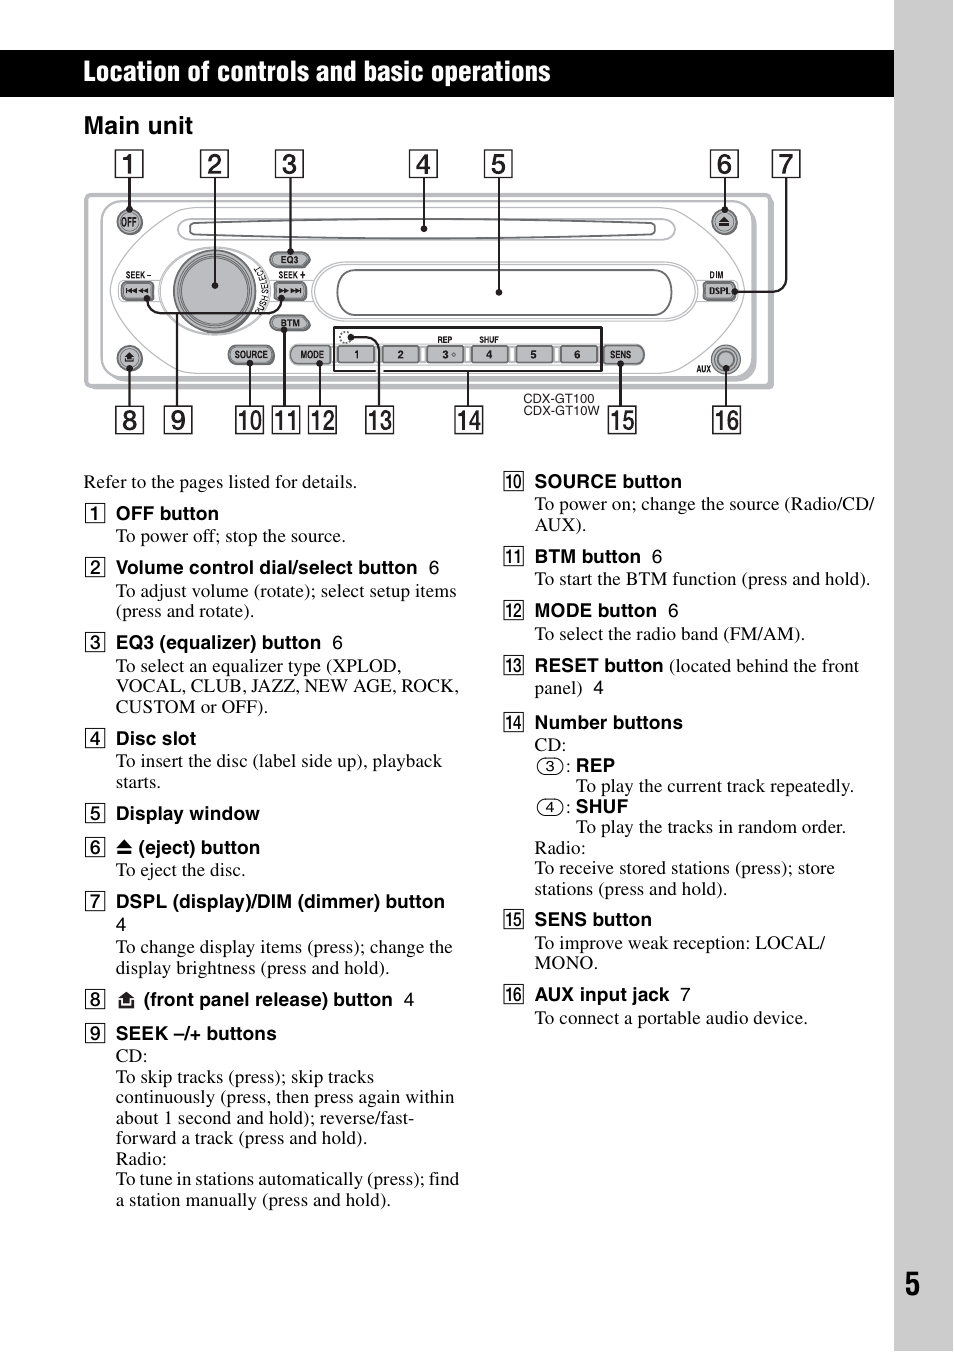 Sony Cdx Gt10w Wiring Harness For Detailed Schematics Diagram Gt340 Manual One Word Quickstart Guide Book U2022 Connector